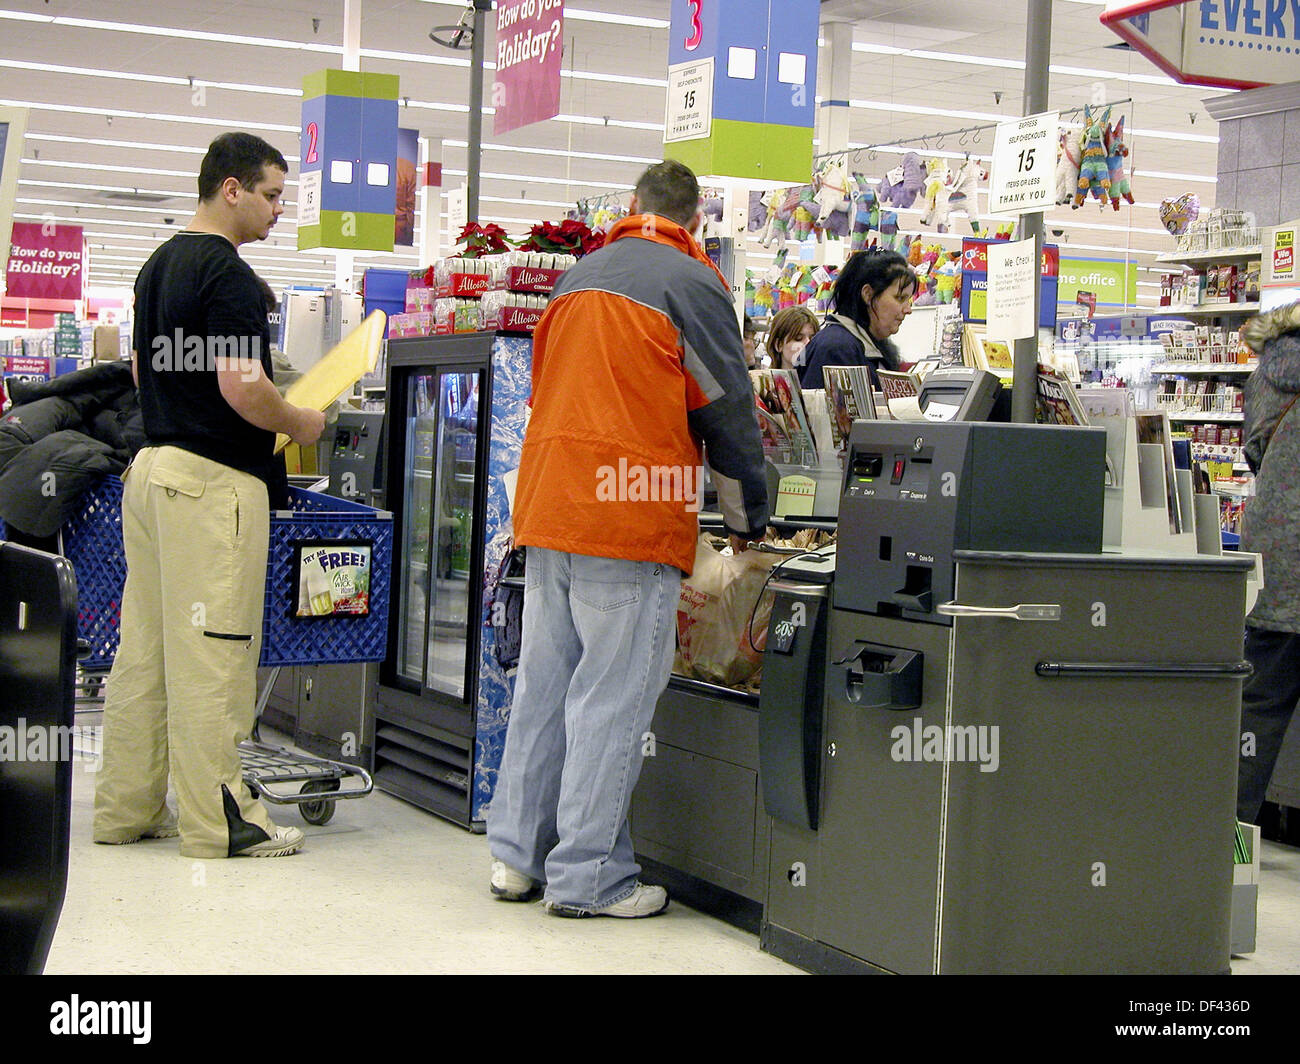 Kmart Stock Photos & Kmart Stock Images - Page 2 - Alamy